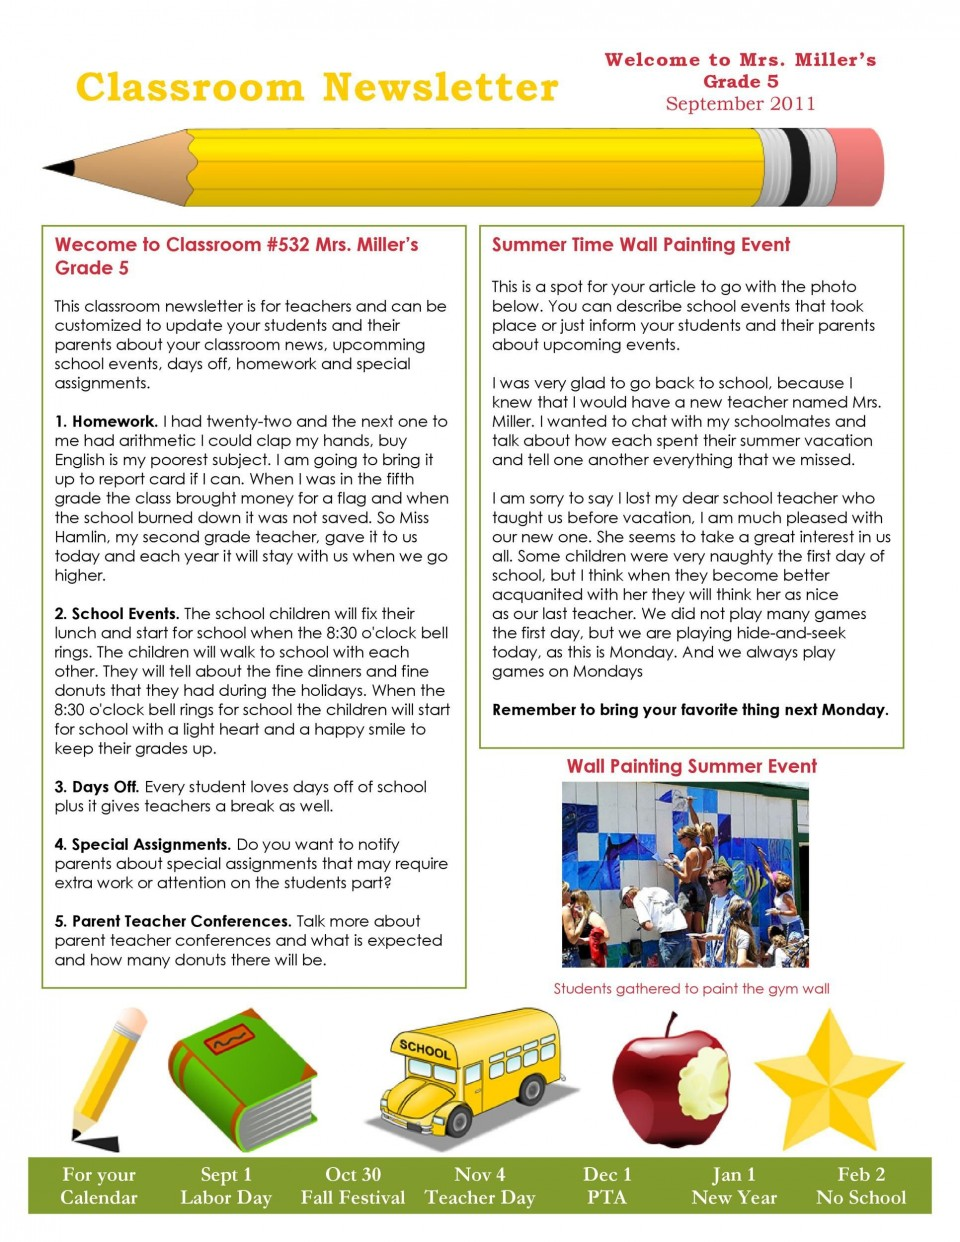 006 Fantastic School Newsletter Template Free High Def  Word Download Counselor960